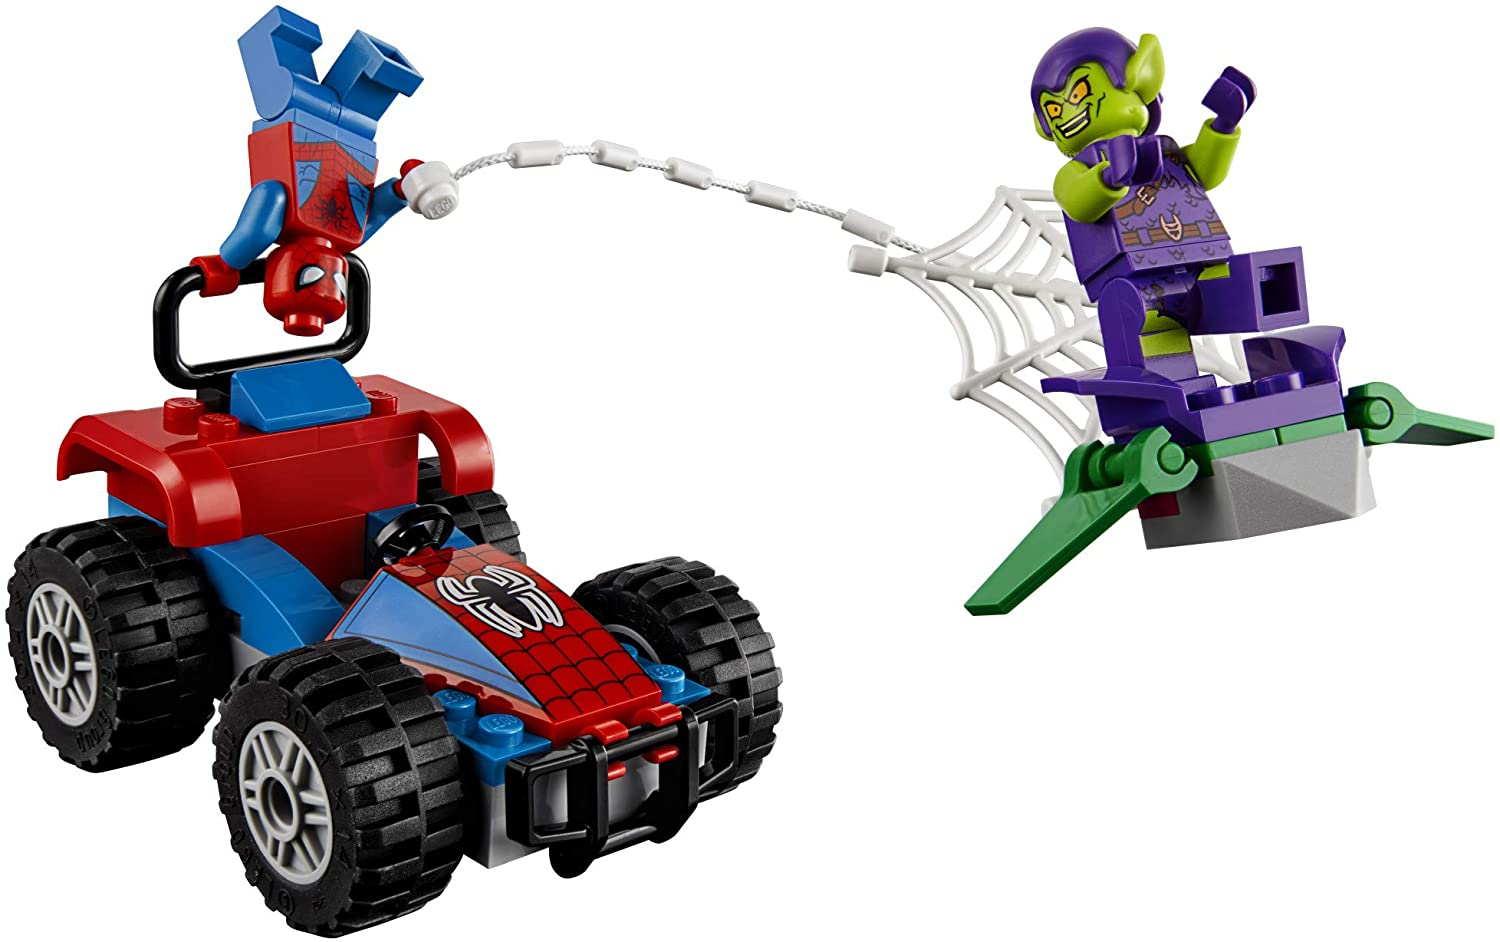 LEGO Marvel Spider-Man Car Chase 76133 Building Kit Green Goblin and Spider Man Superhero Car Toy Chase 52 Pieces Discontinued by Manufacturer